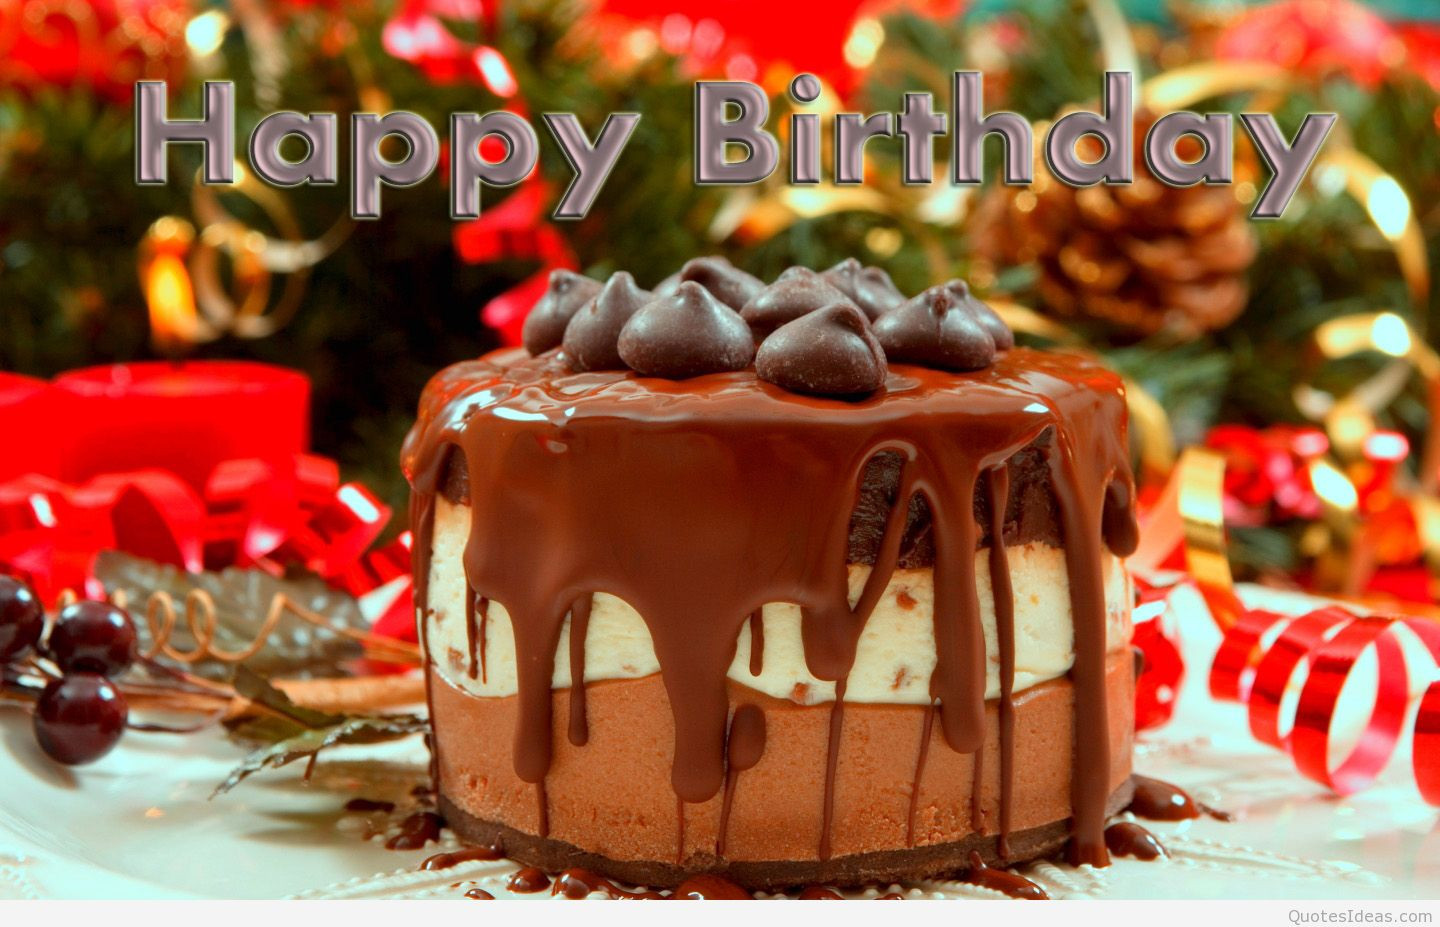 Best ideas about Image Of Happy Birthday Wish . Save or Pin Best birthday wishes wallpapers hd with messages Now.